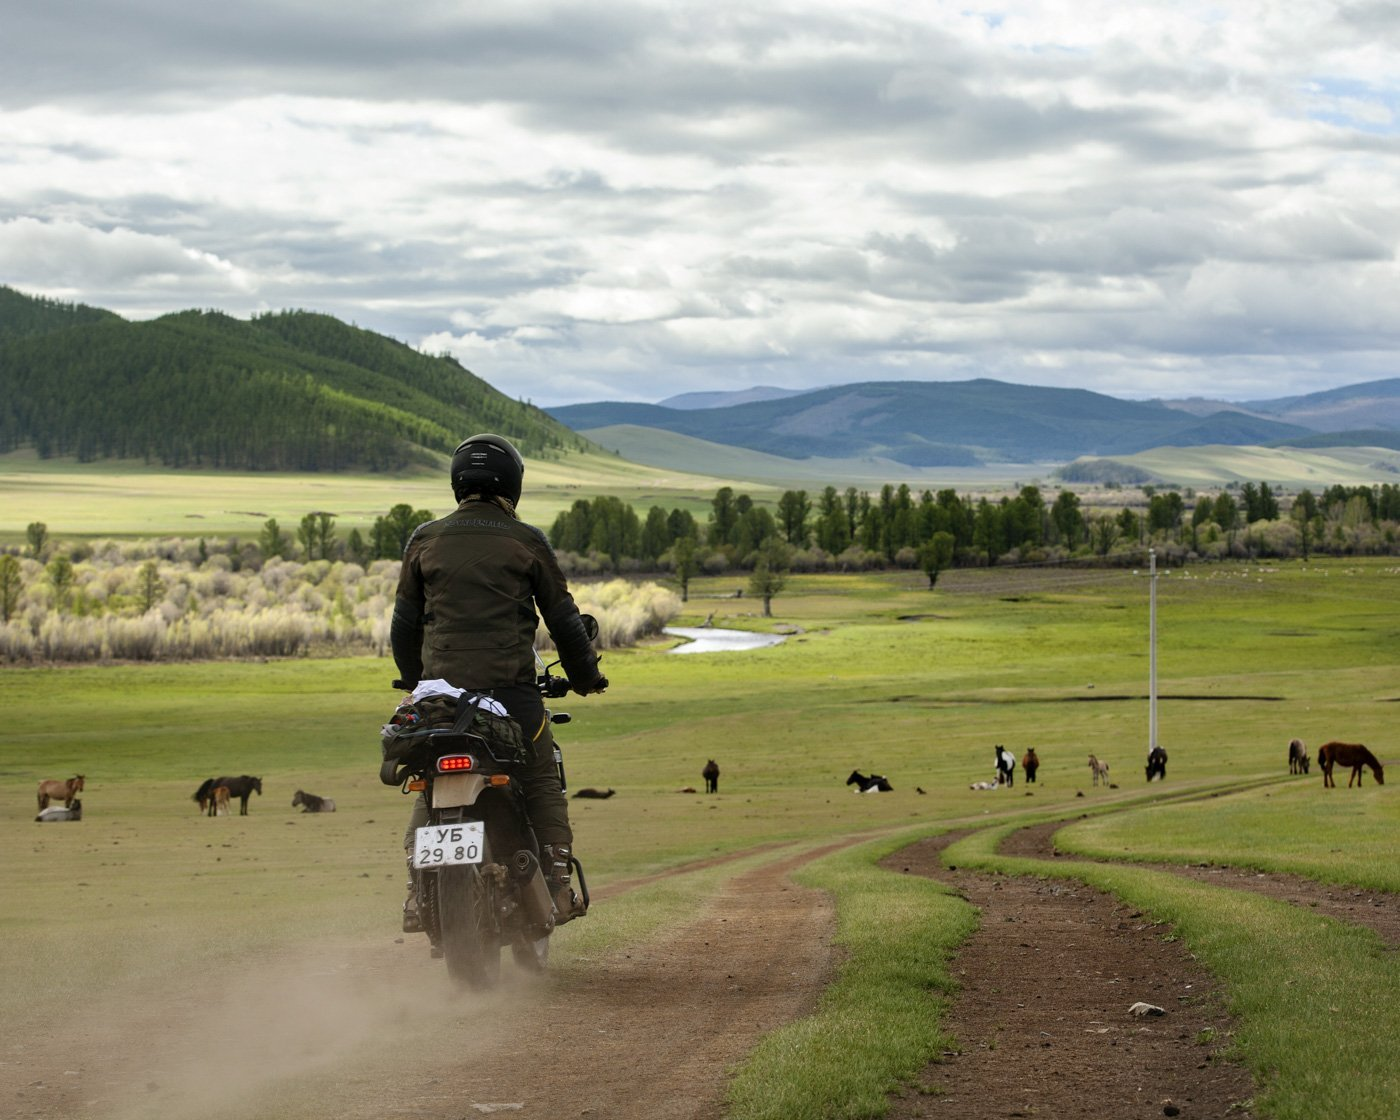 Motorcycle road trip Mongolia - On the Trail of Genghis Khan